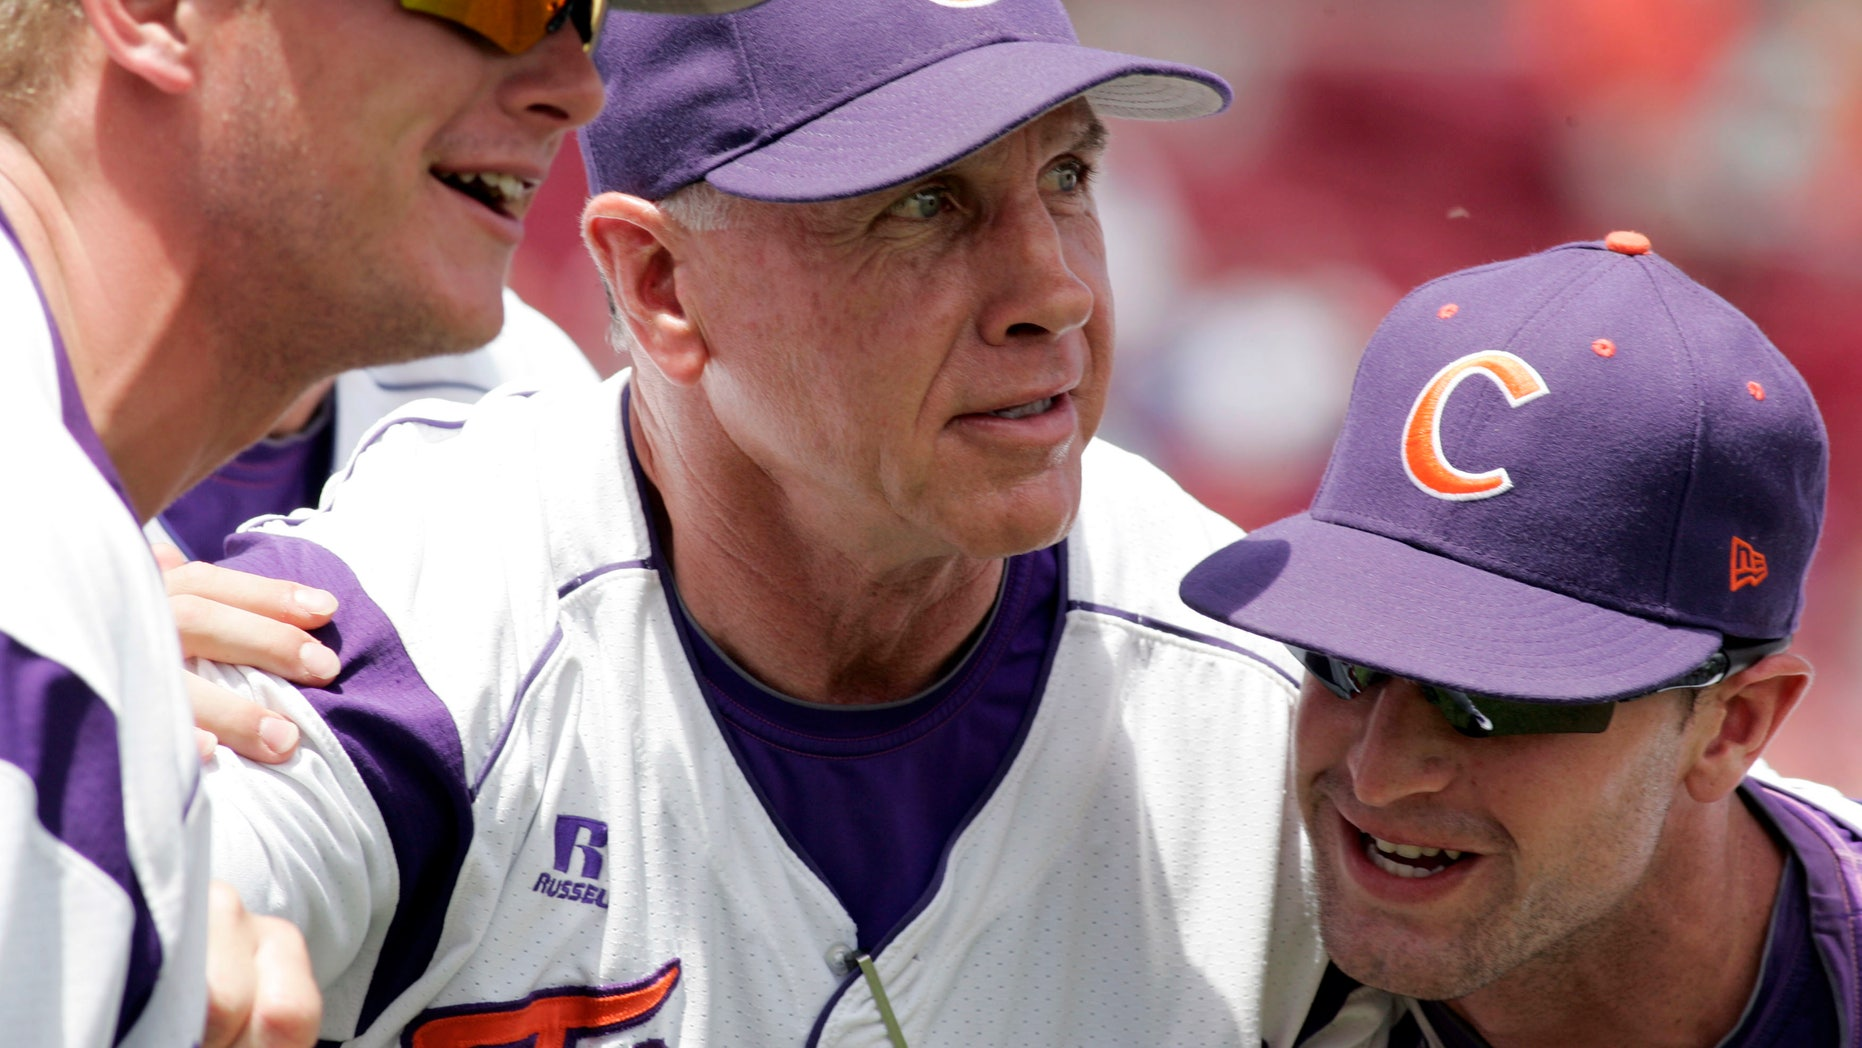 FILE - In this May 31, 2013, file photo, Clemson's coach Jack Leggett huddles witgh his players Joseph Moorefield left, and Scott Firth, right, before the start of an NCAA collegebaseballregional tournamentgame against Liberty in Columbia, S.C. Leggett will have the Tigers shooting for Omaha once more when the team opens training camp Saturday.  (AP Photo/Mary Ann Chastain, File)